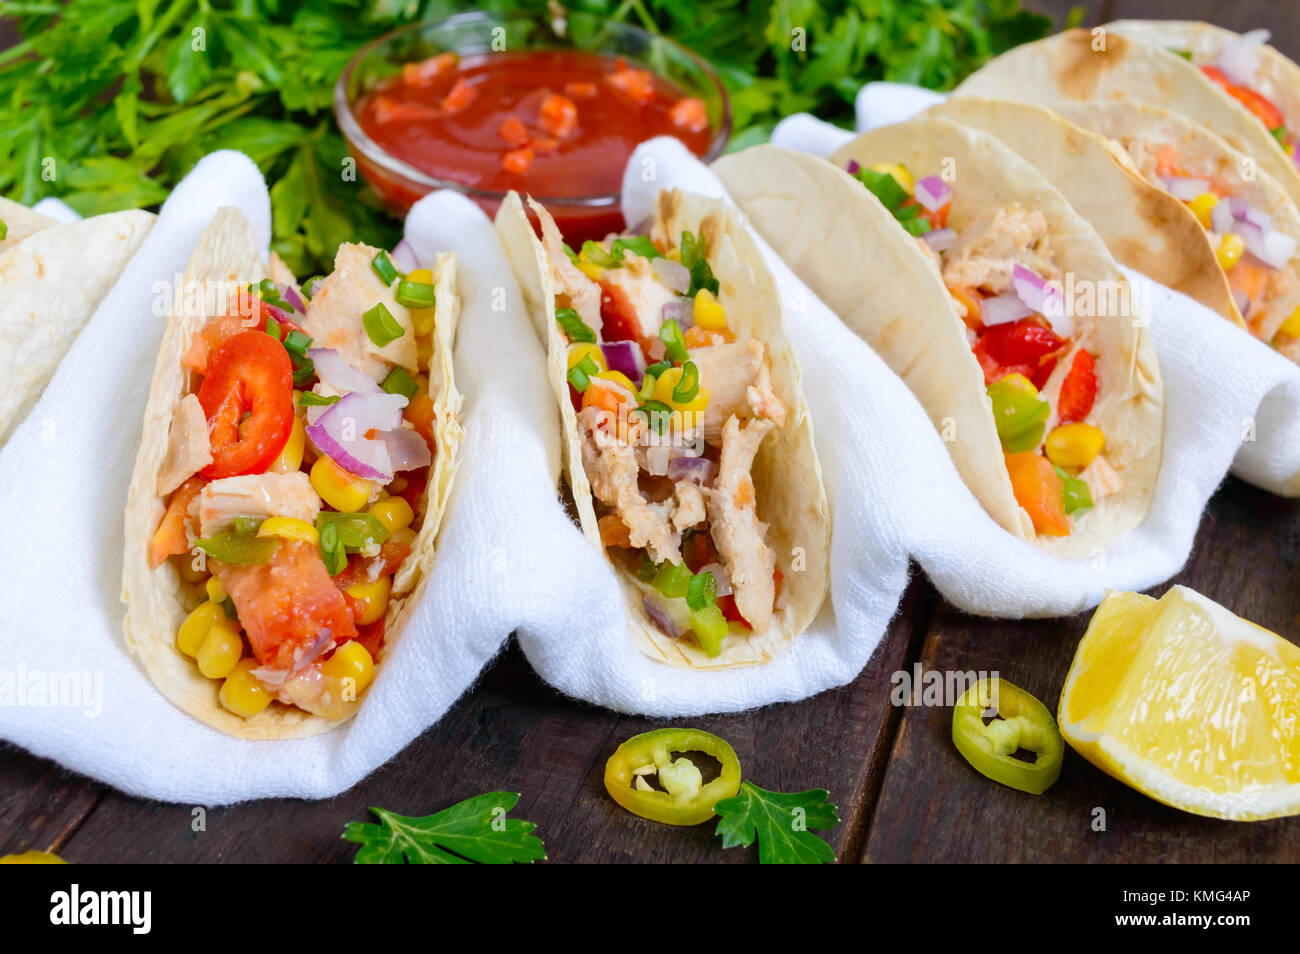 Mexican Restaurant Tacos Burritos Stock Photos Set Of Meat Cuts Diagram In Colourful Style With Corn Tomatoes Sweet Pepper Red Onions A